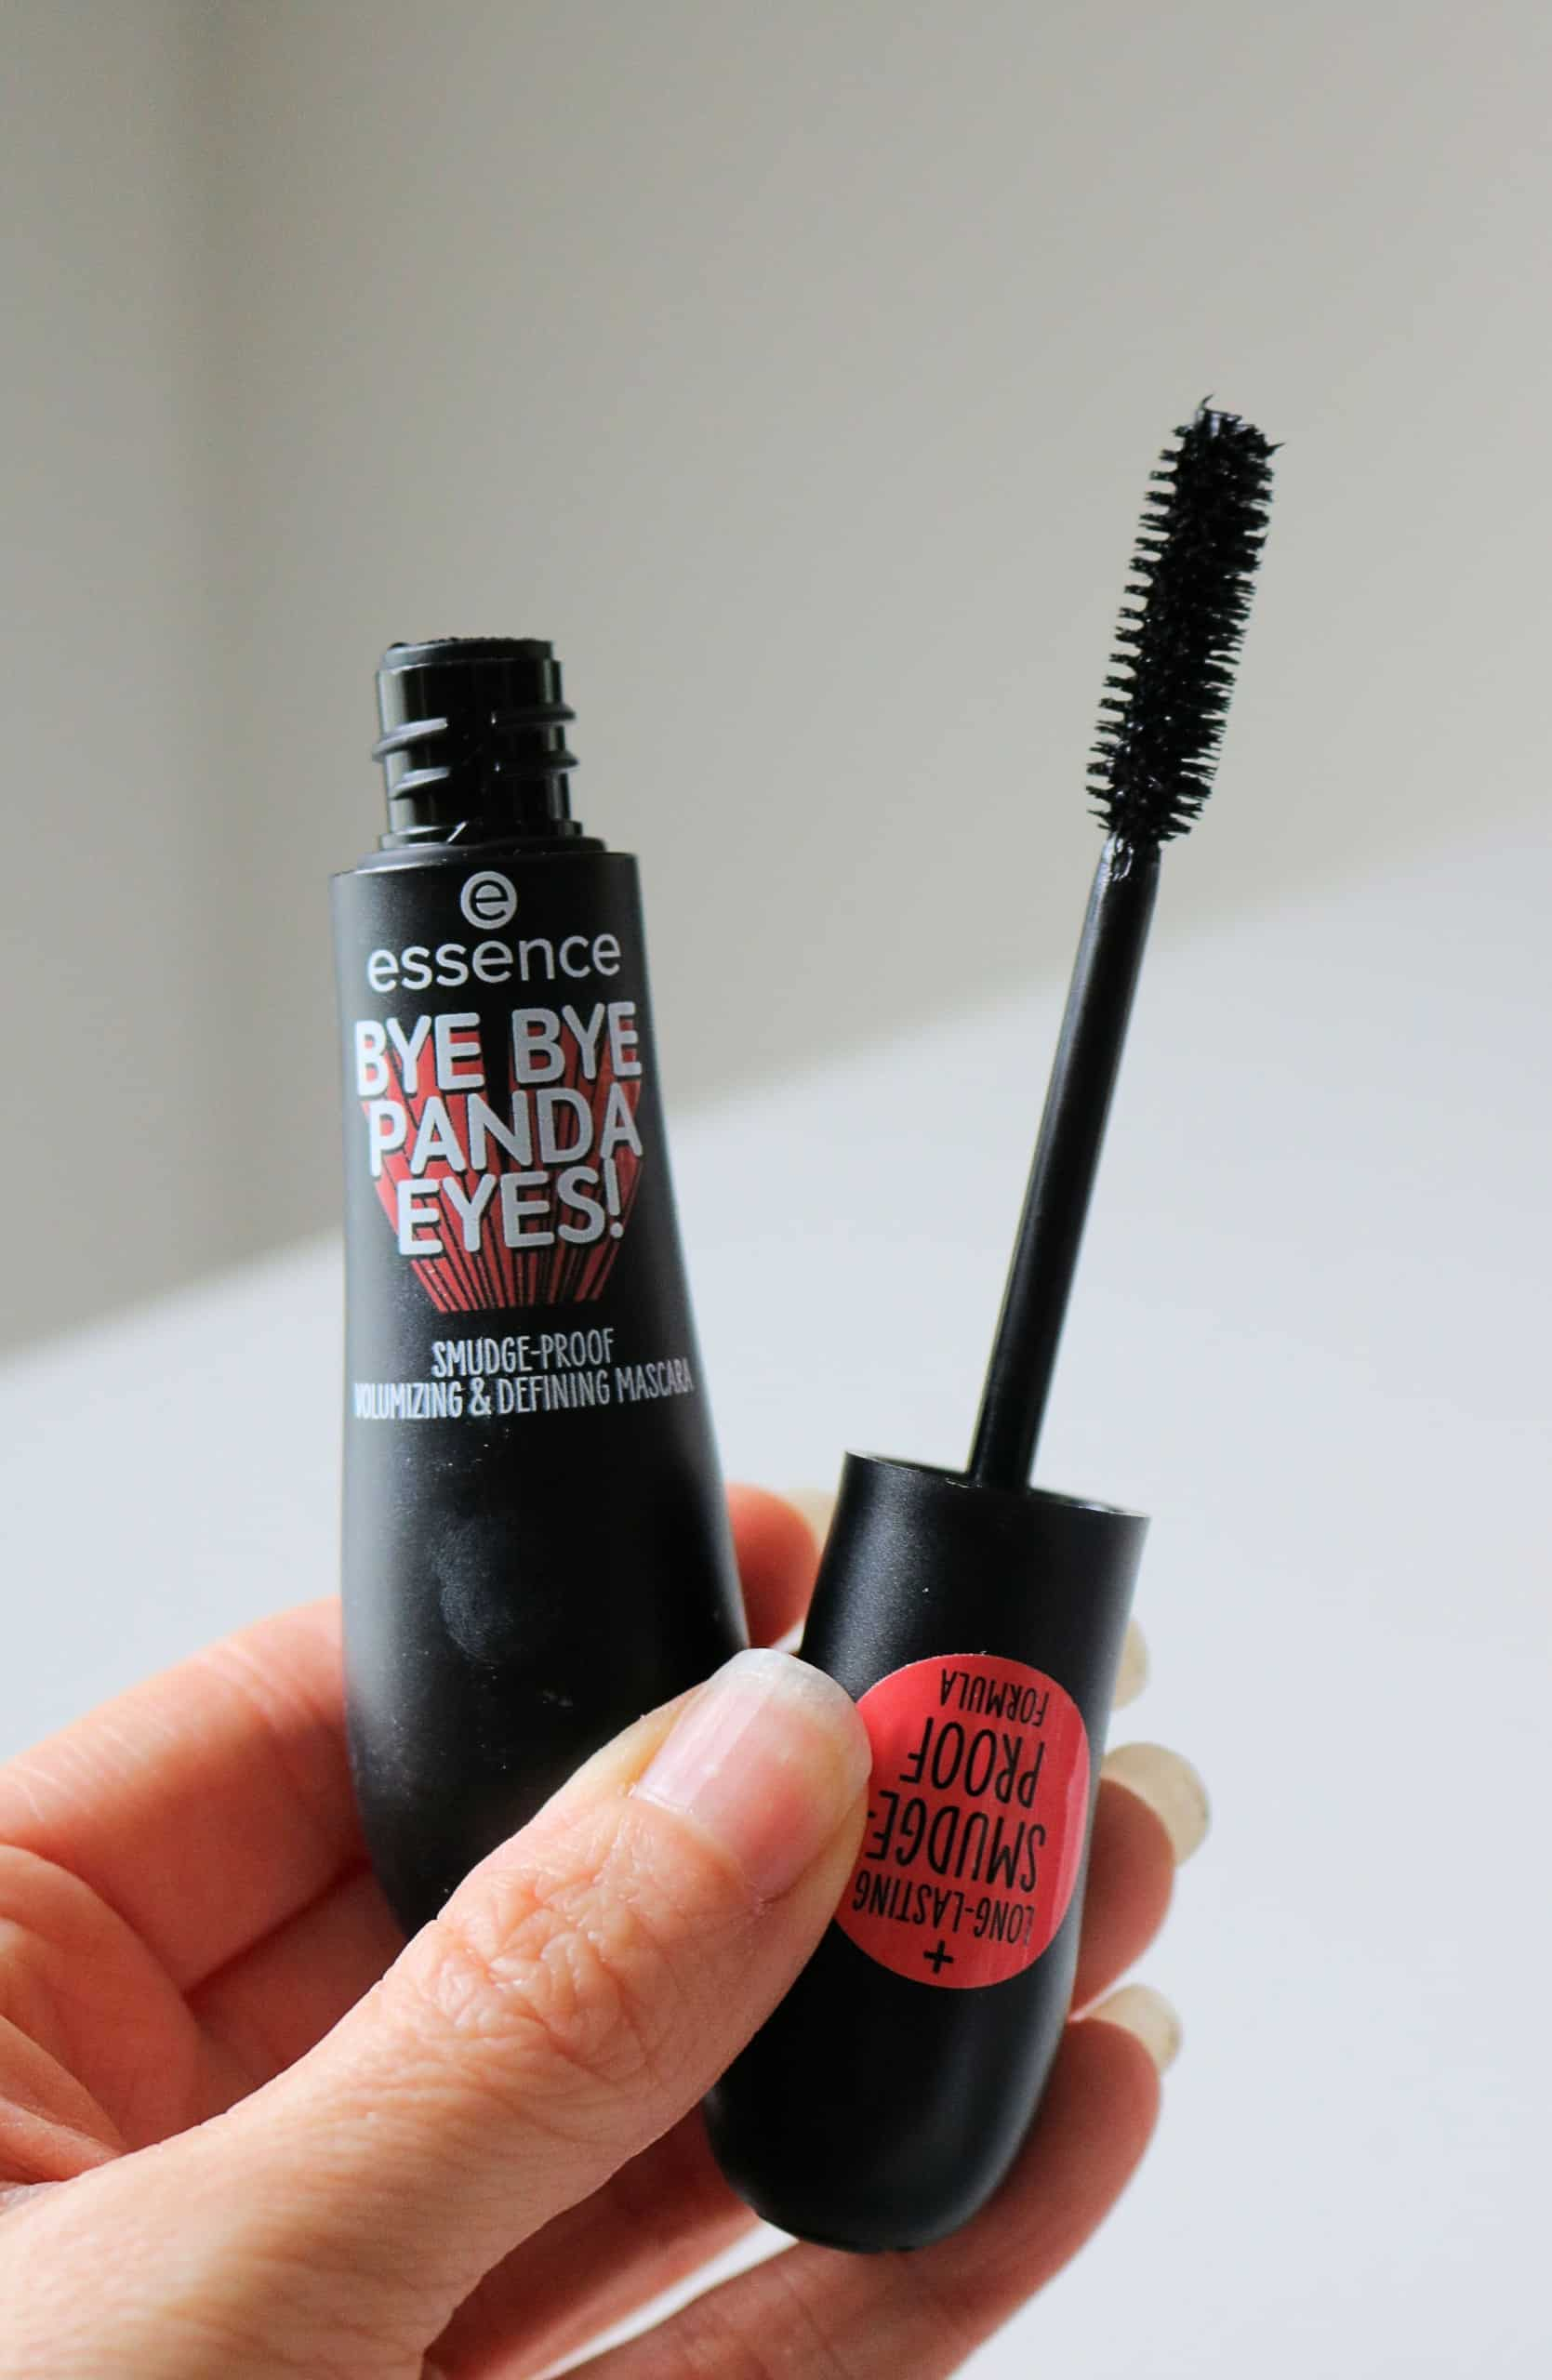 Looking for the best drugstore mascaras? Check out my list of the 6 Best Drugstore Mascaras for lengthening, curling, and adding volume to short lashes. These affordable drugstore mascaras are better than high end mascaras and cost less than $11 each! #drugstoremascaras #drugstoremakeup #mascara #bestmakeup